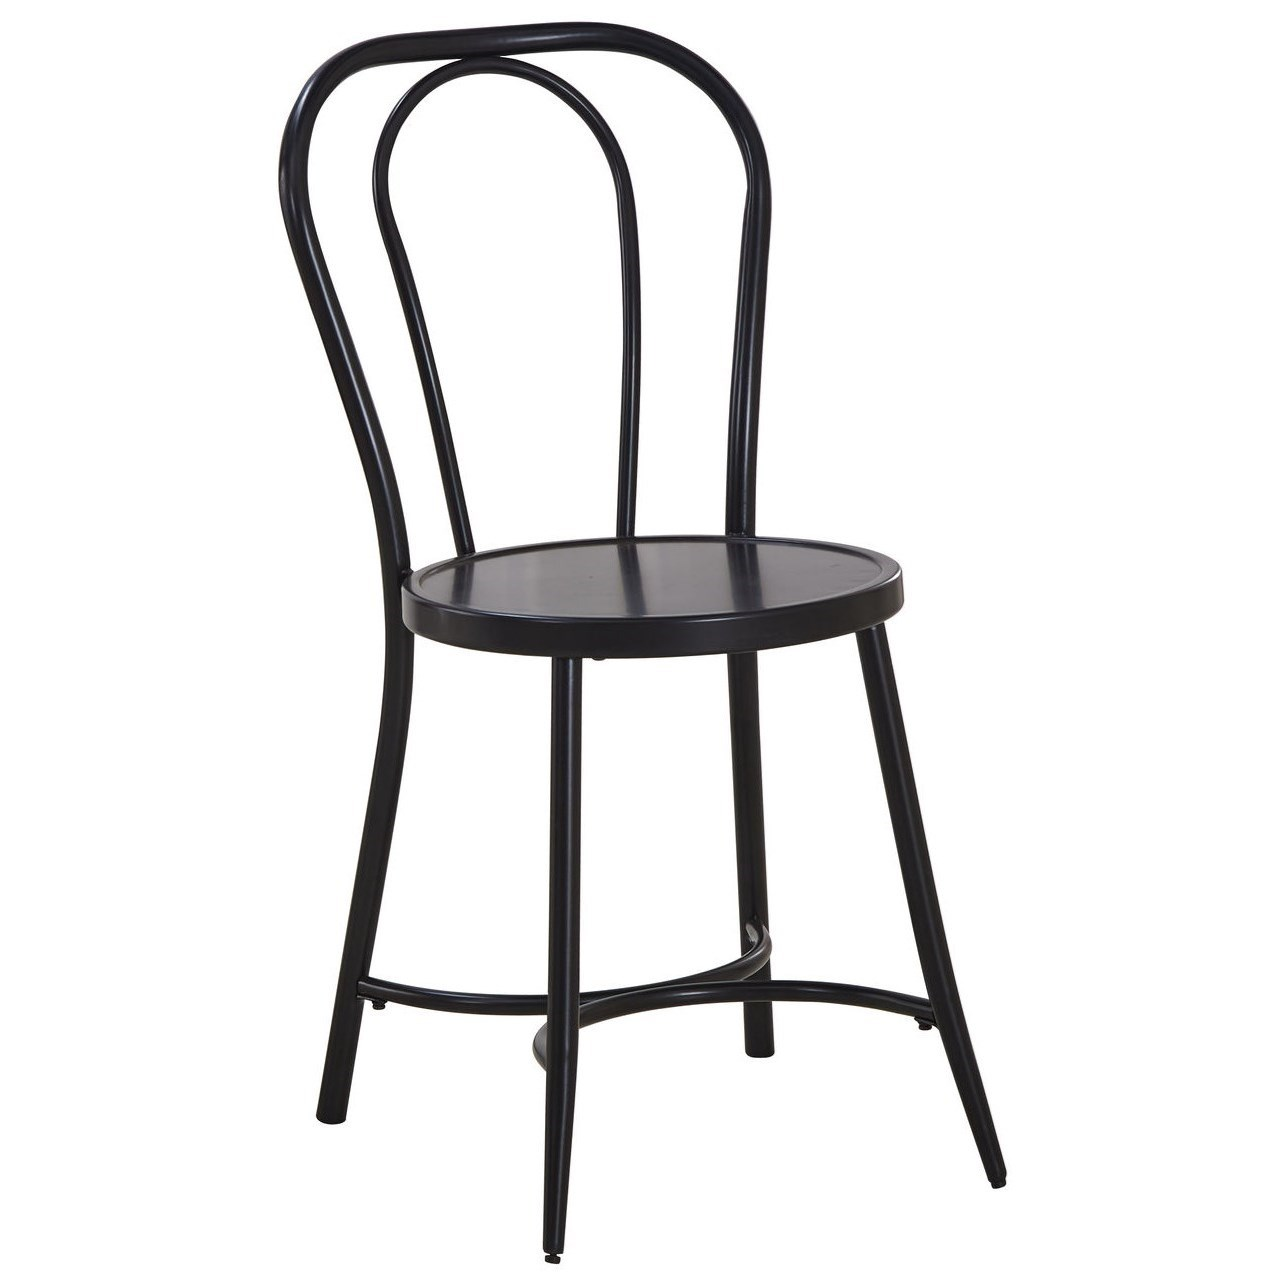 Claire Dining Side Chair by Steve Silver at Walker's Furniture